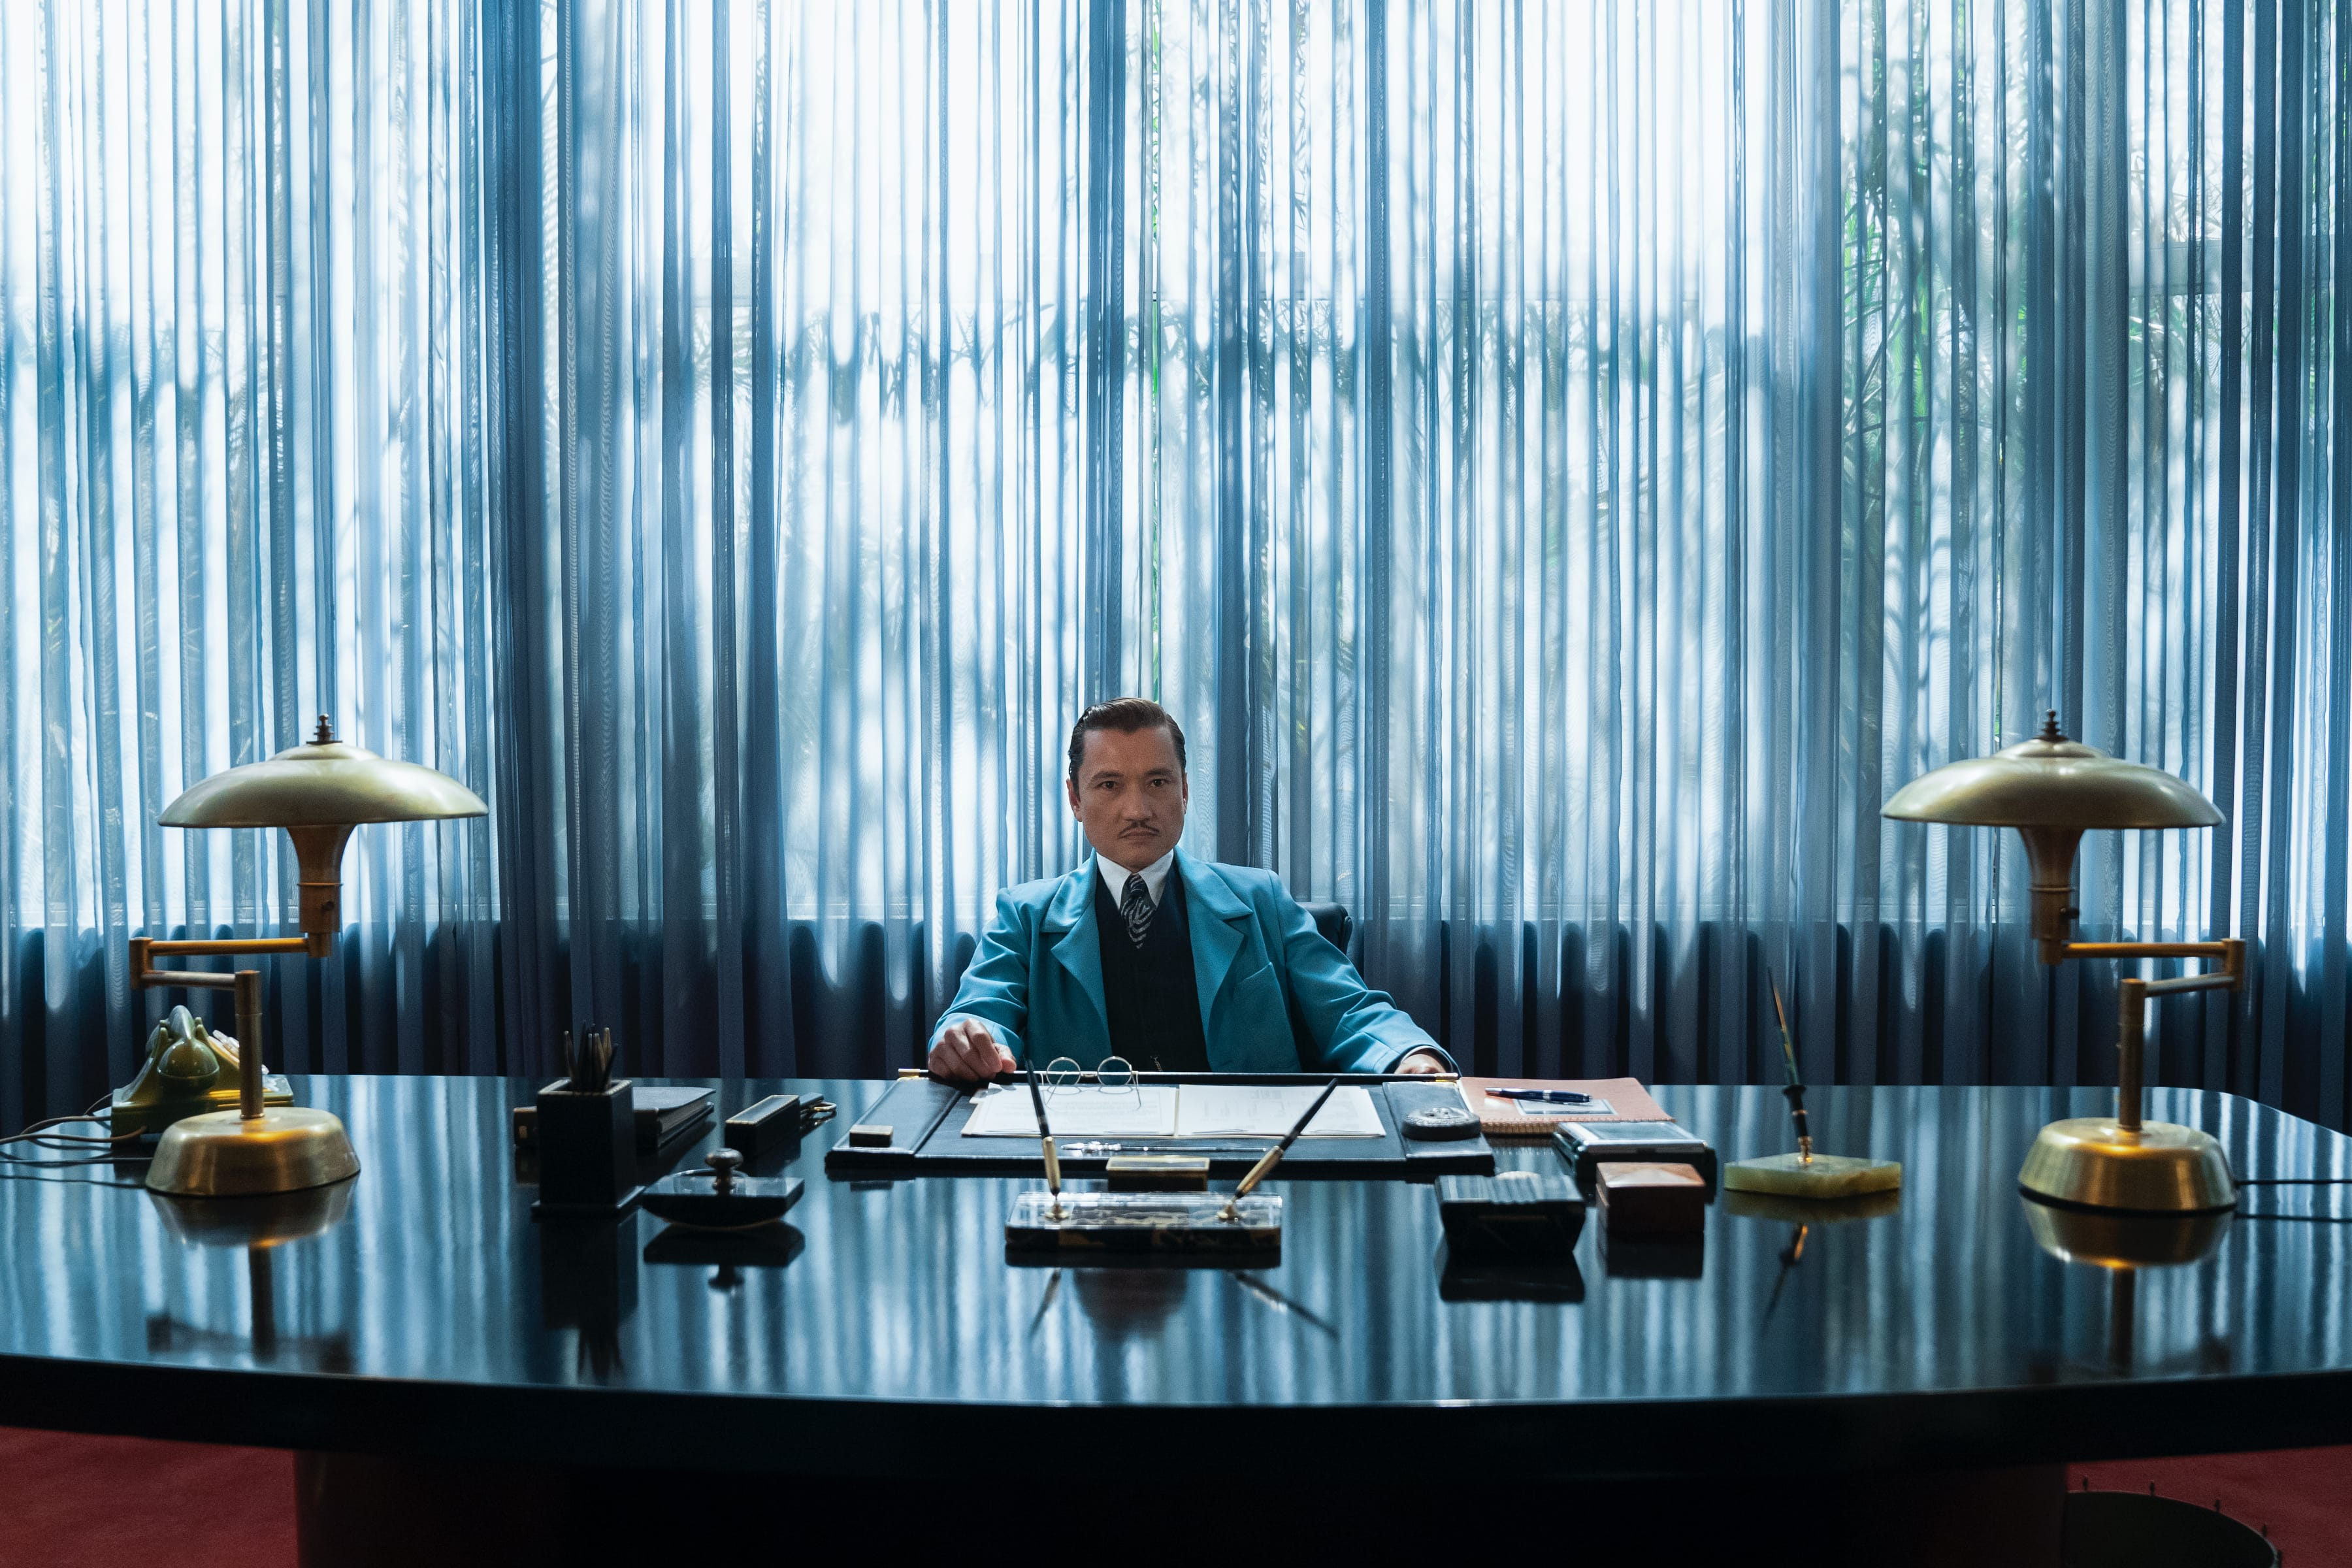 Dr. Hanover is stationed behind an imposing desk in his oppressively blue office.